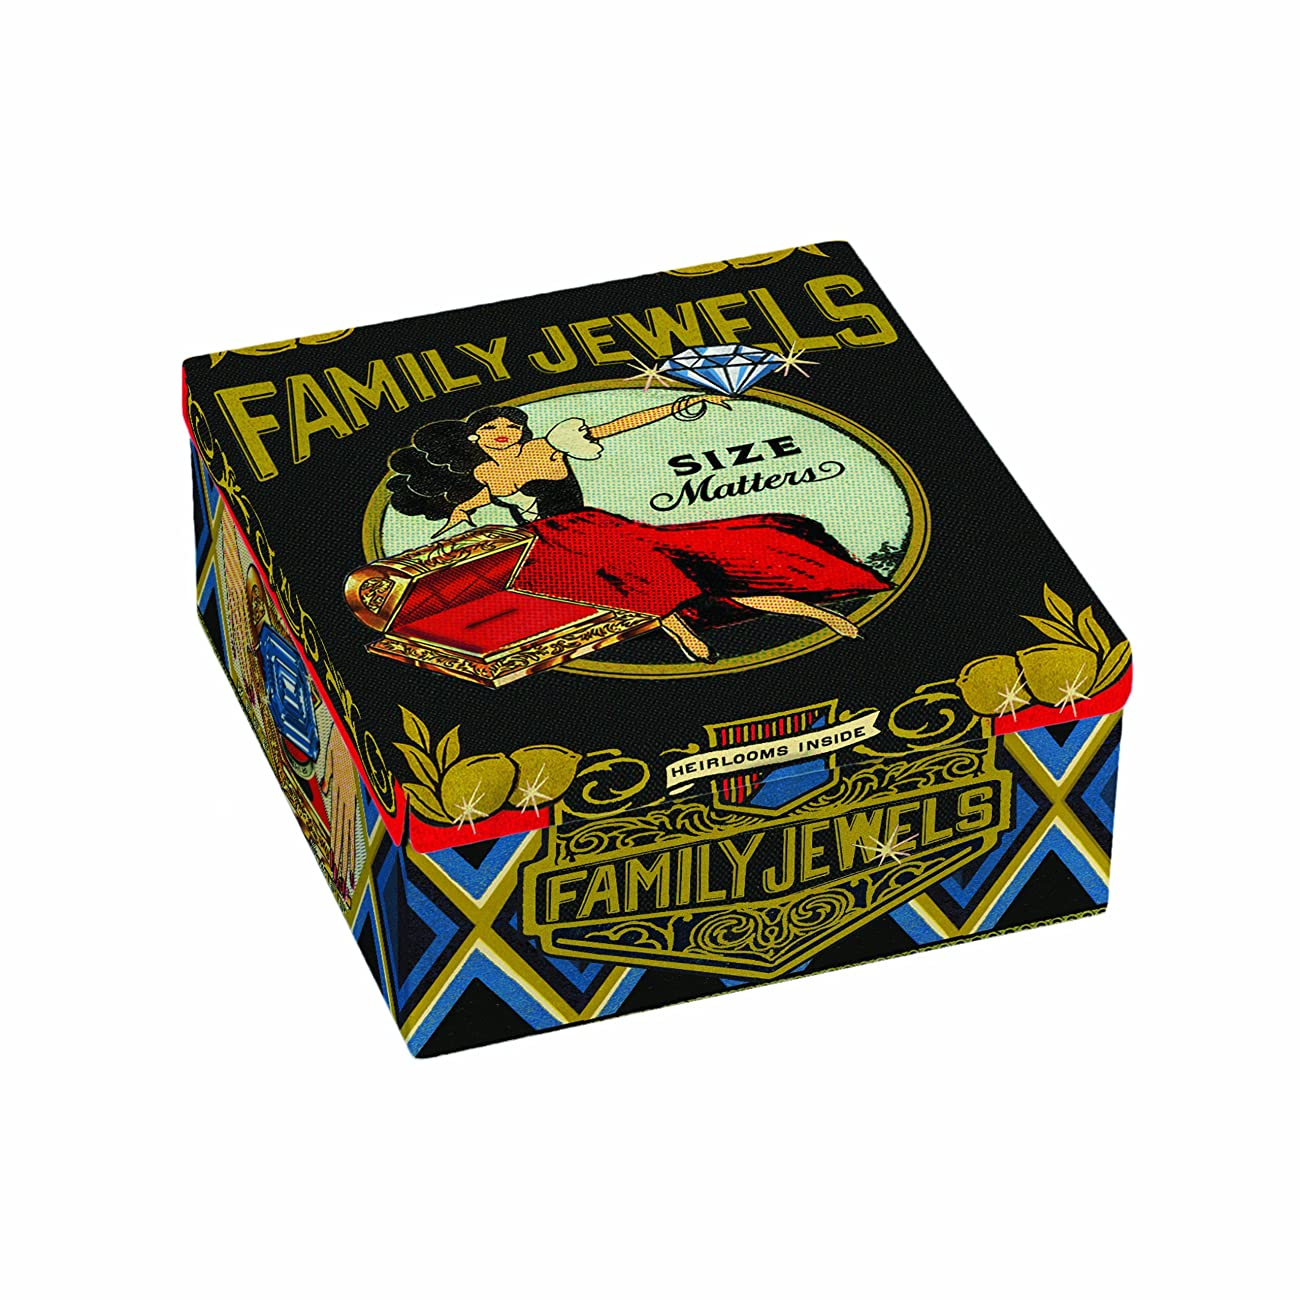 Blue Q Family Jewels Petite Cigar Box 0